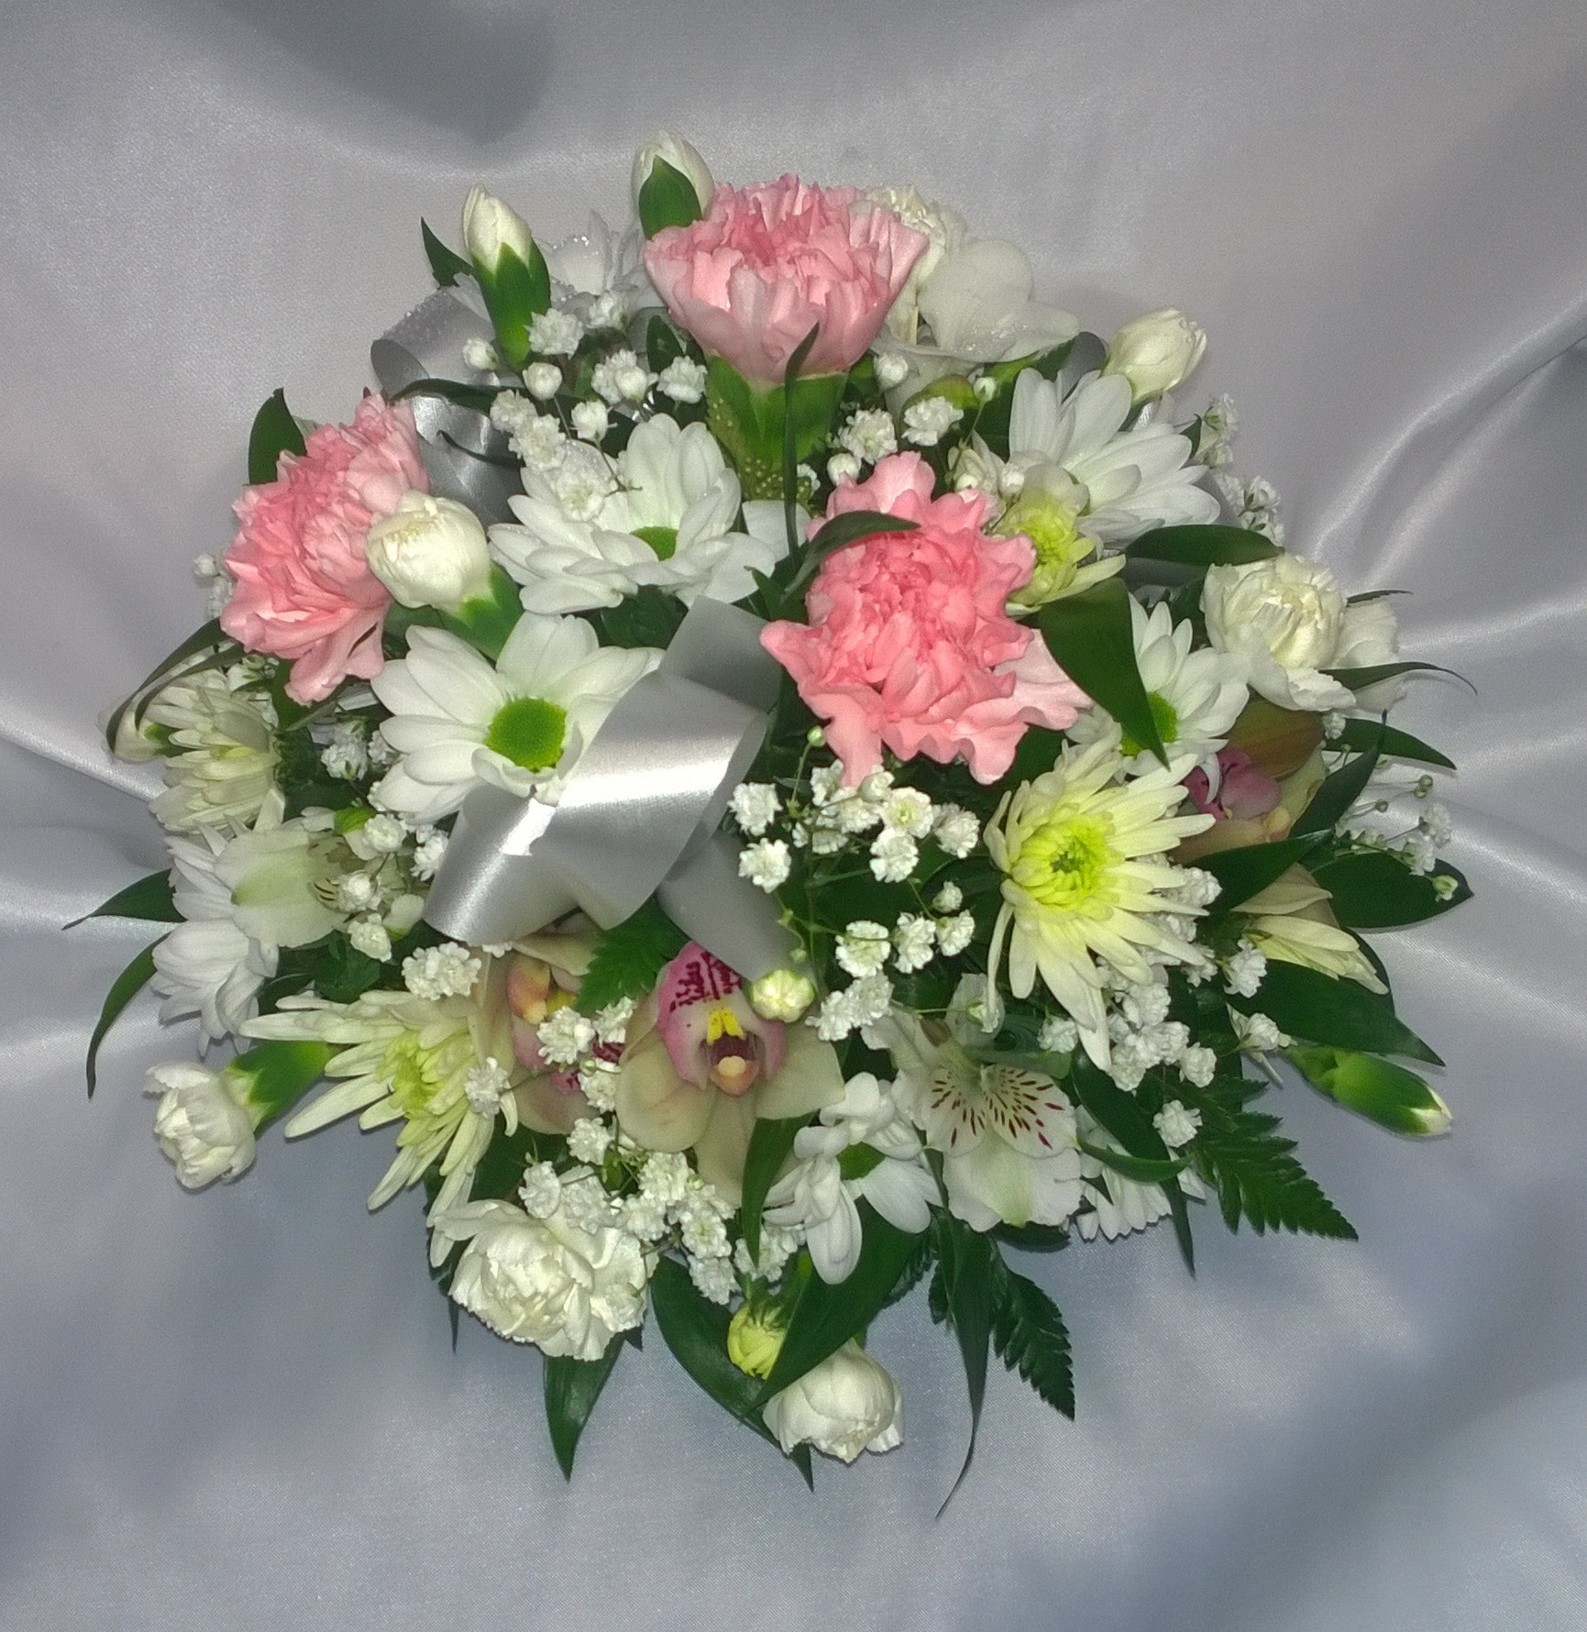 Personal flowers of crewe 01270 584596 personal flowers of crewe personal flowers of crewe izmirmasajfo